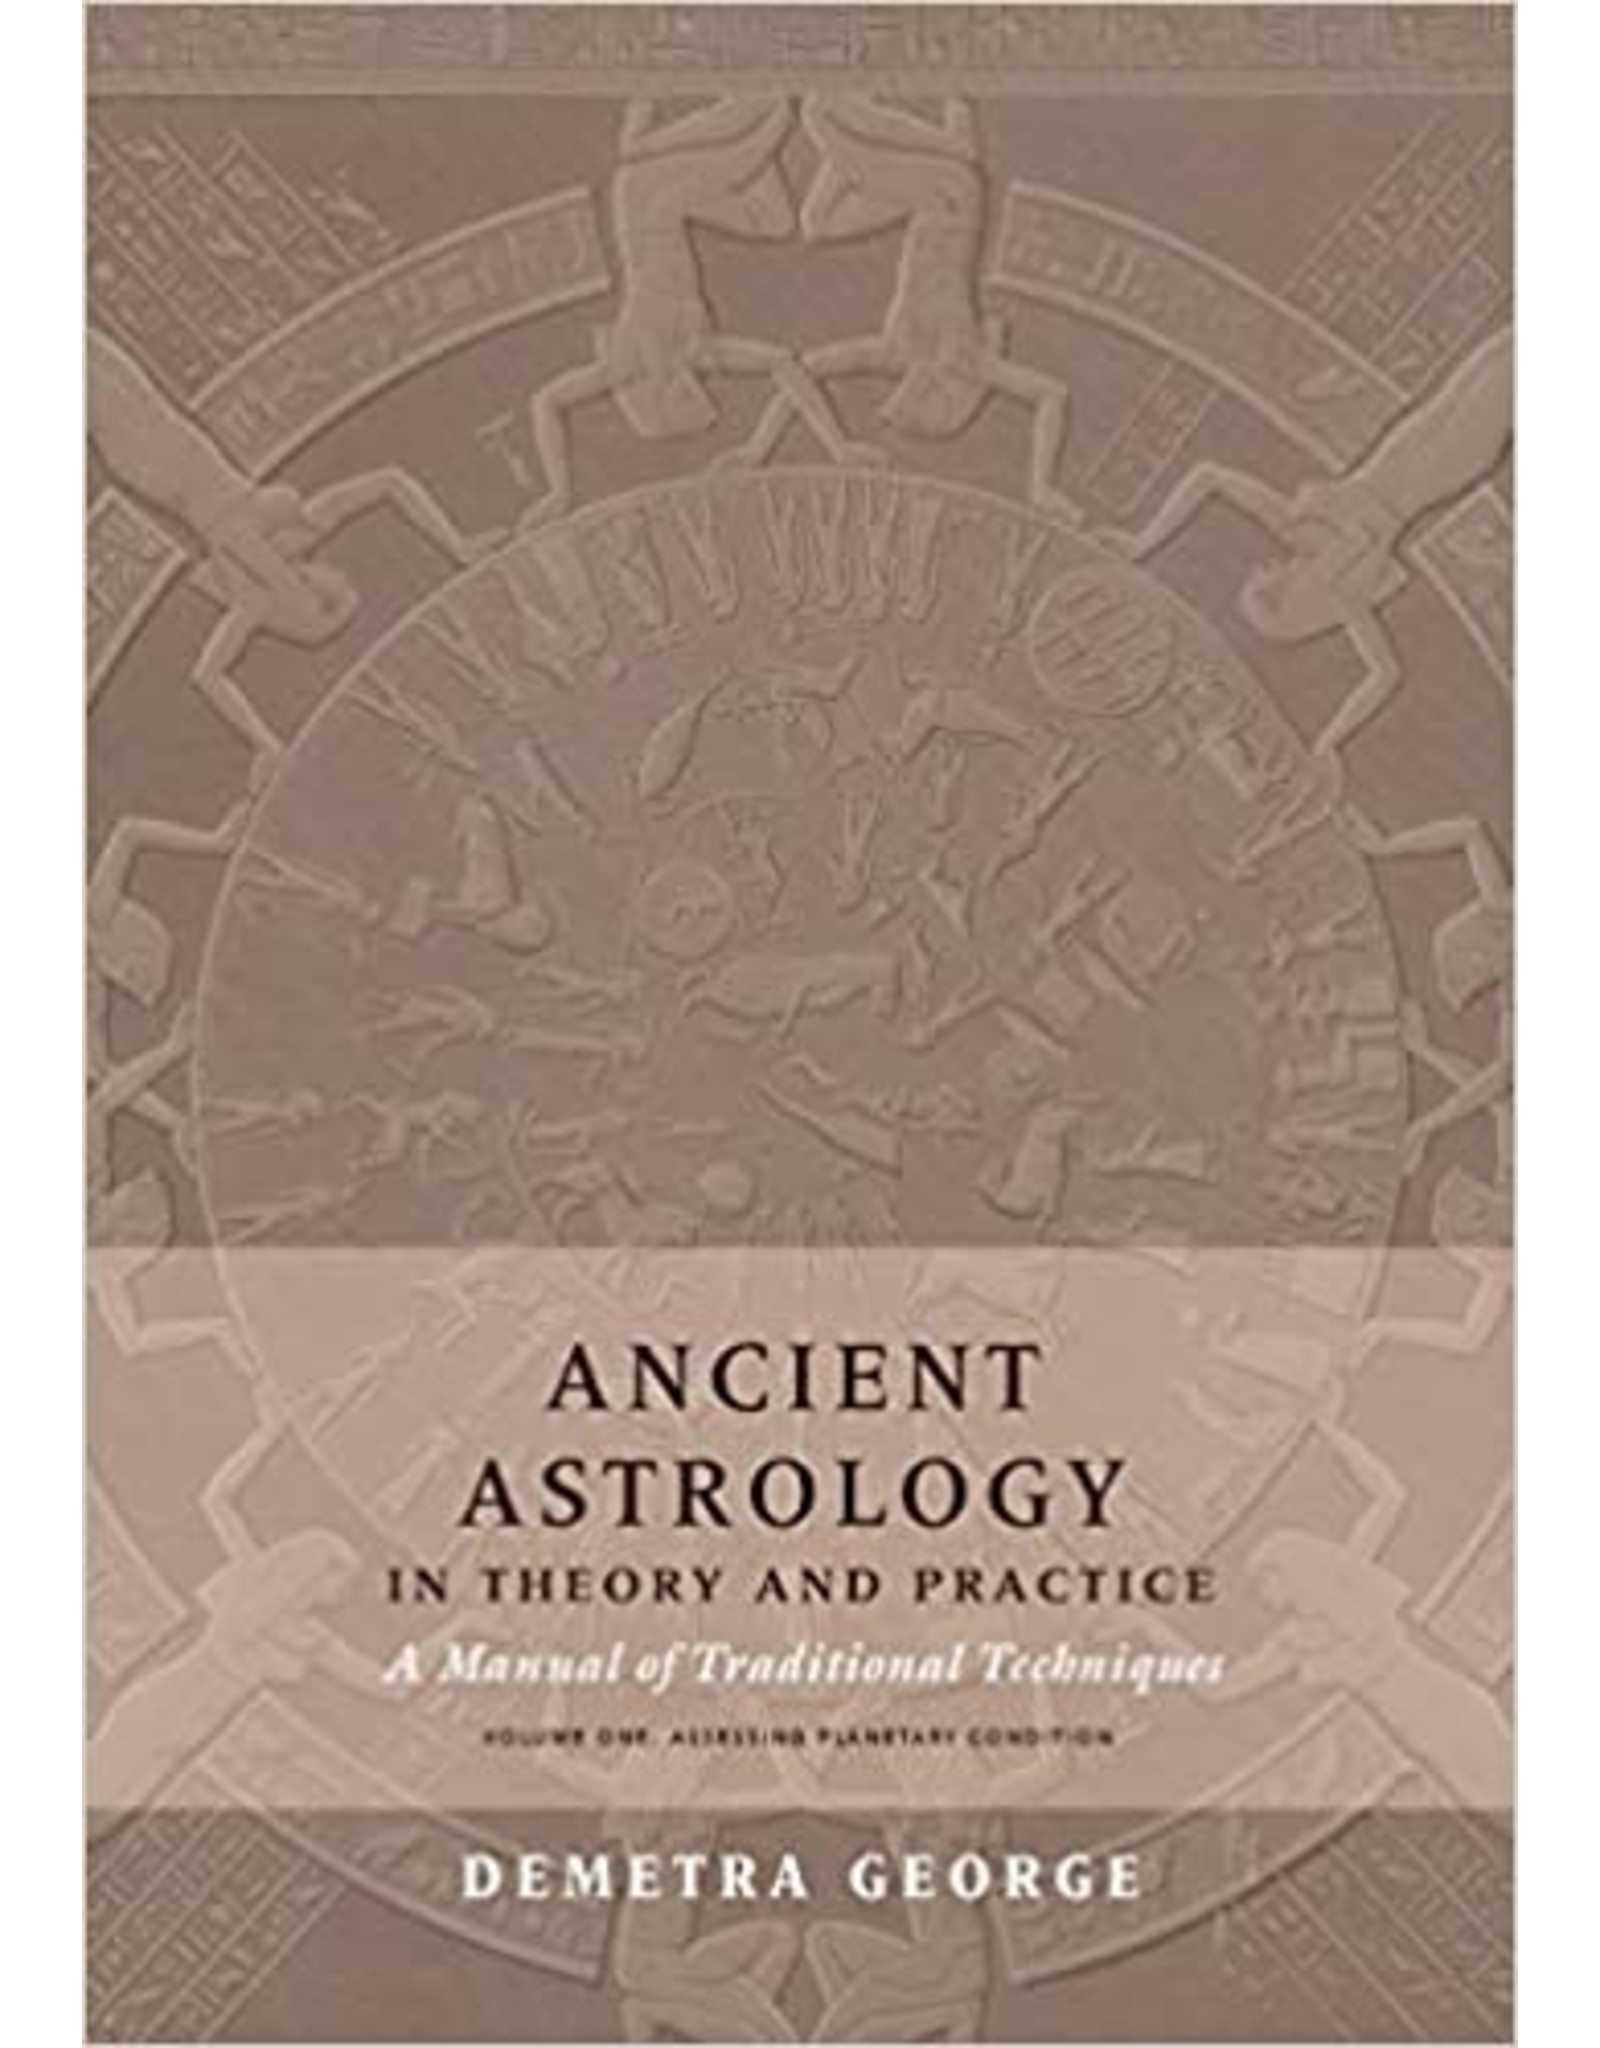 Ancient Astrology in Theory and Practice